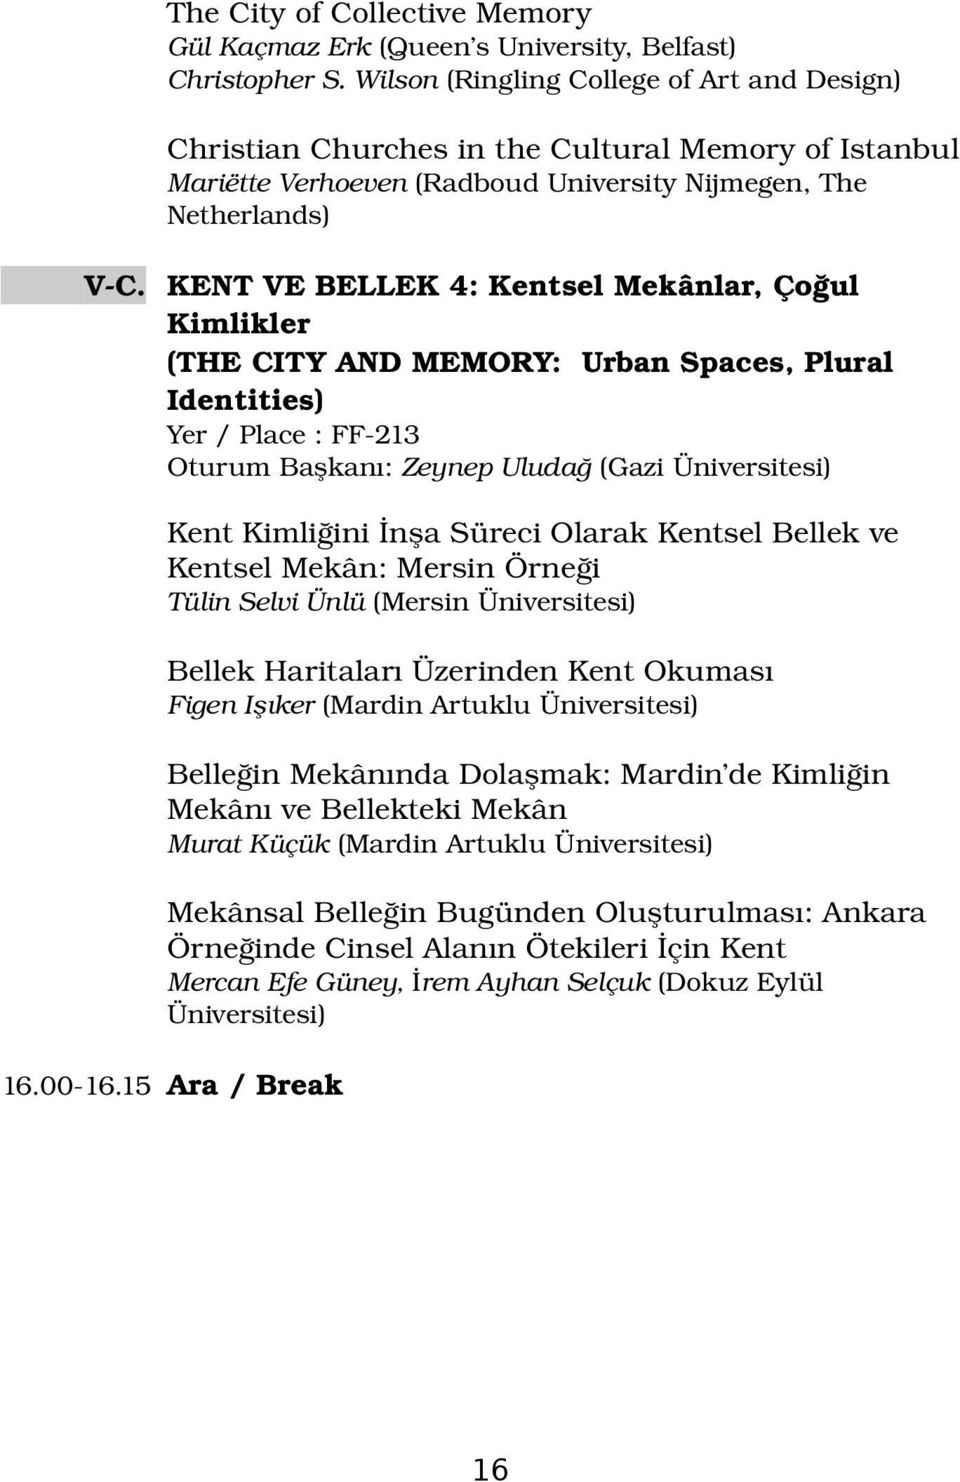 KENT VE BELLEK 4: Kentsel Mekânlar, Çoğul Kimlikler (THE CITY AND MEMORY: Urban Spaces, Plural Identities) Yer / Place : FF 213 Oturum Başkanı: Zeynep Uludağ (Gazi Üniversitesi) Kent Kimliğini İnşa